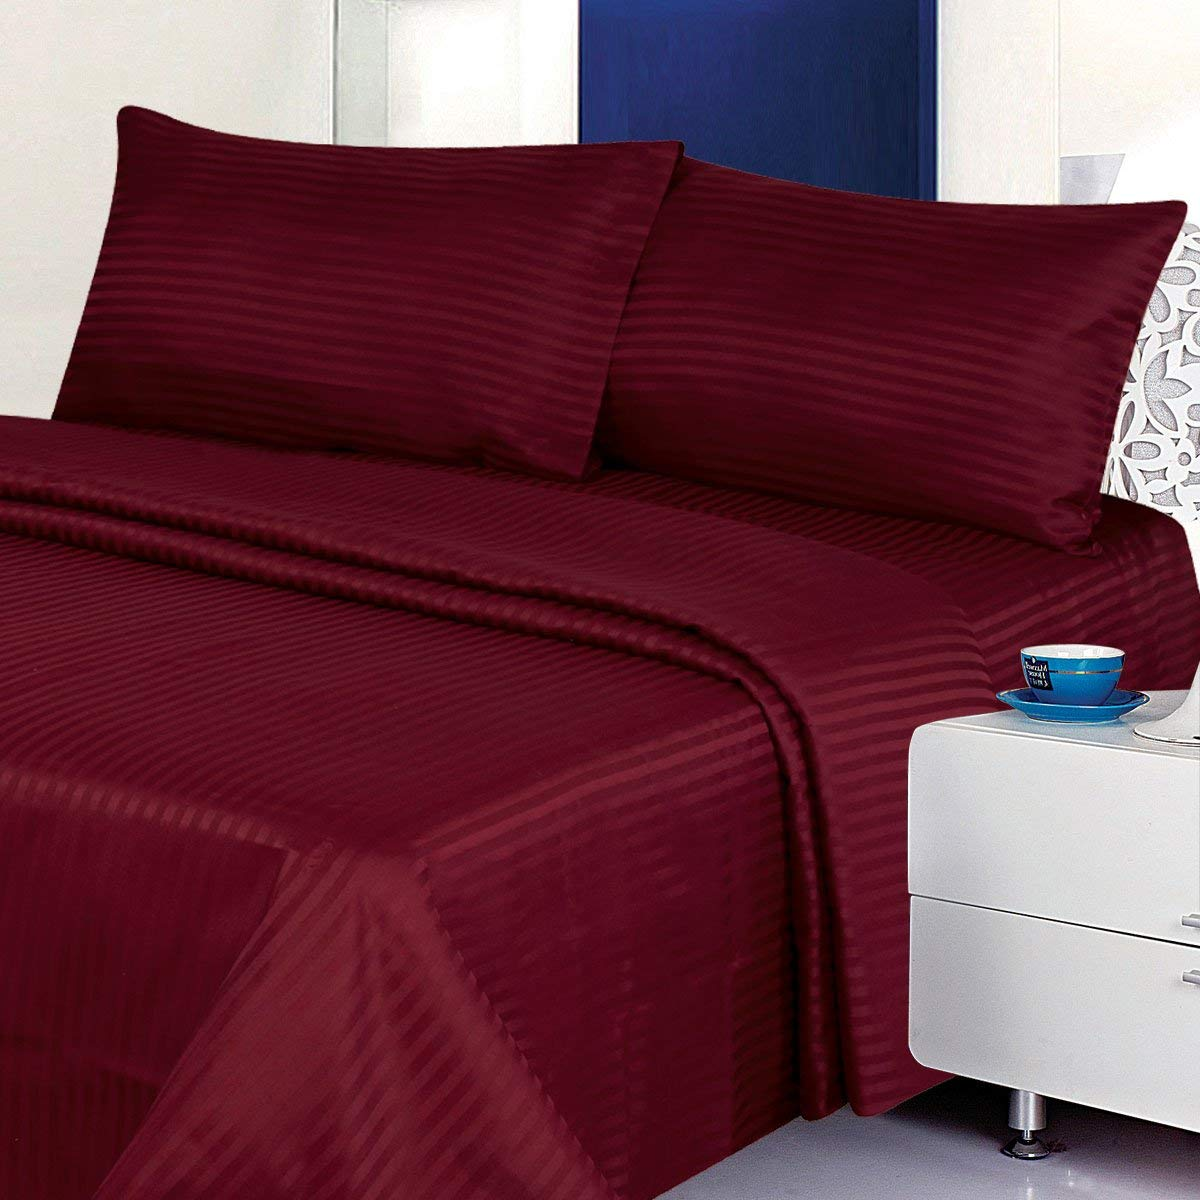 Millenium Linen  Queen Size Bed Sheet Set - Burgundy - 1600 Series 4 Piece - Deep Pocket  -  Cool and Wrinkle Fre e - 1 Fitted, 1 Flat, 2 Pillow Cases by Millenium Linen